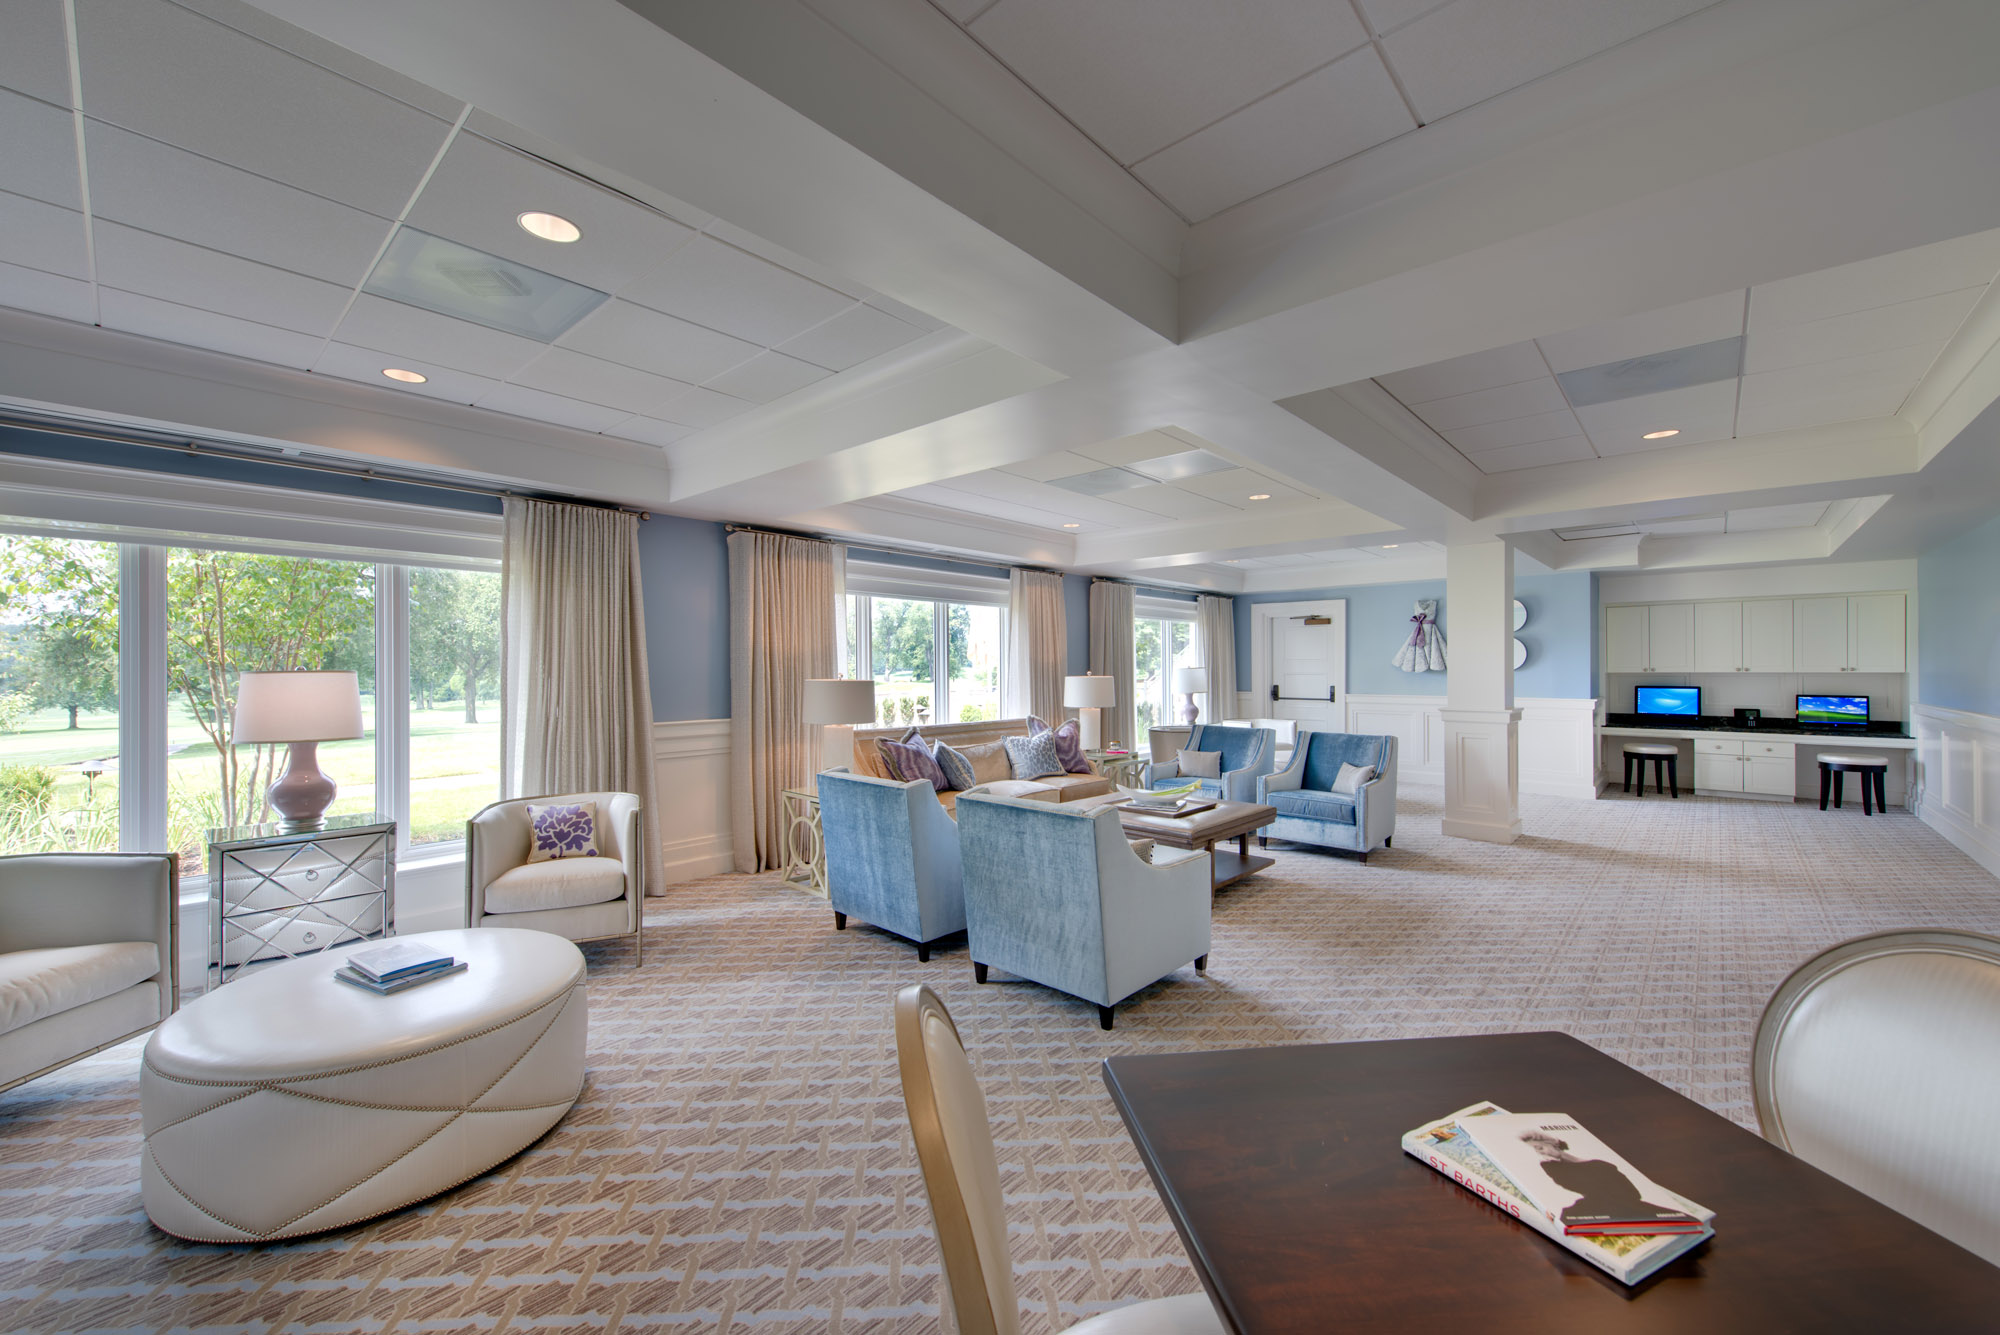 Woodmont Country Club Interior Image202655.jpg